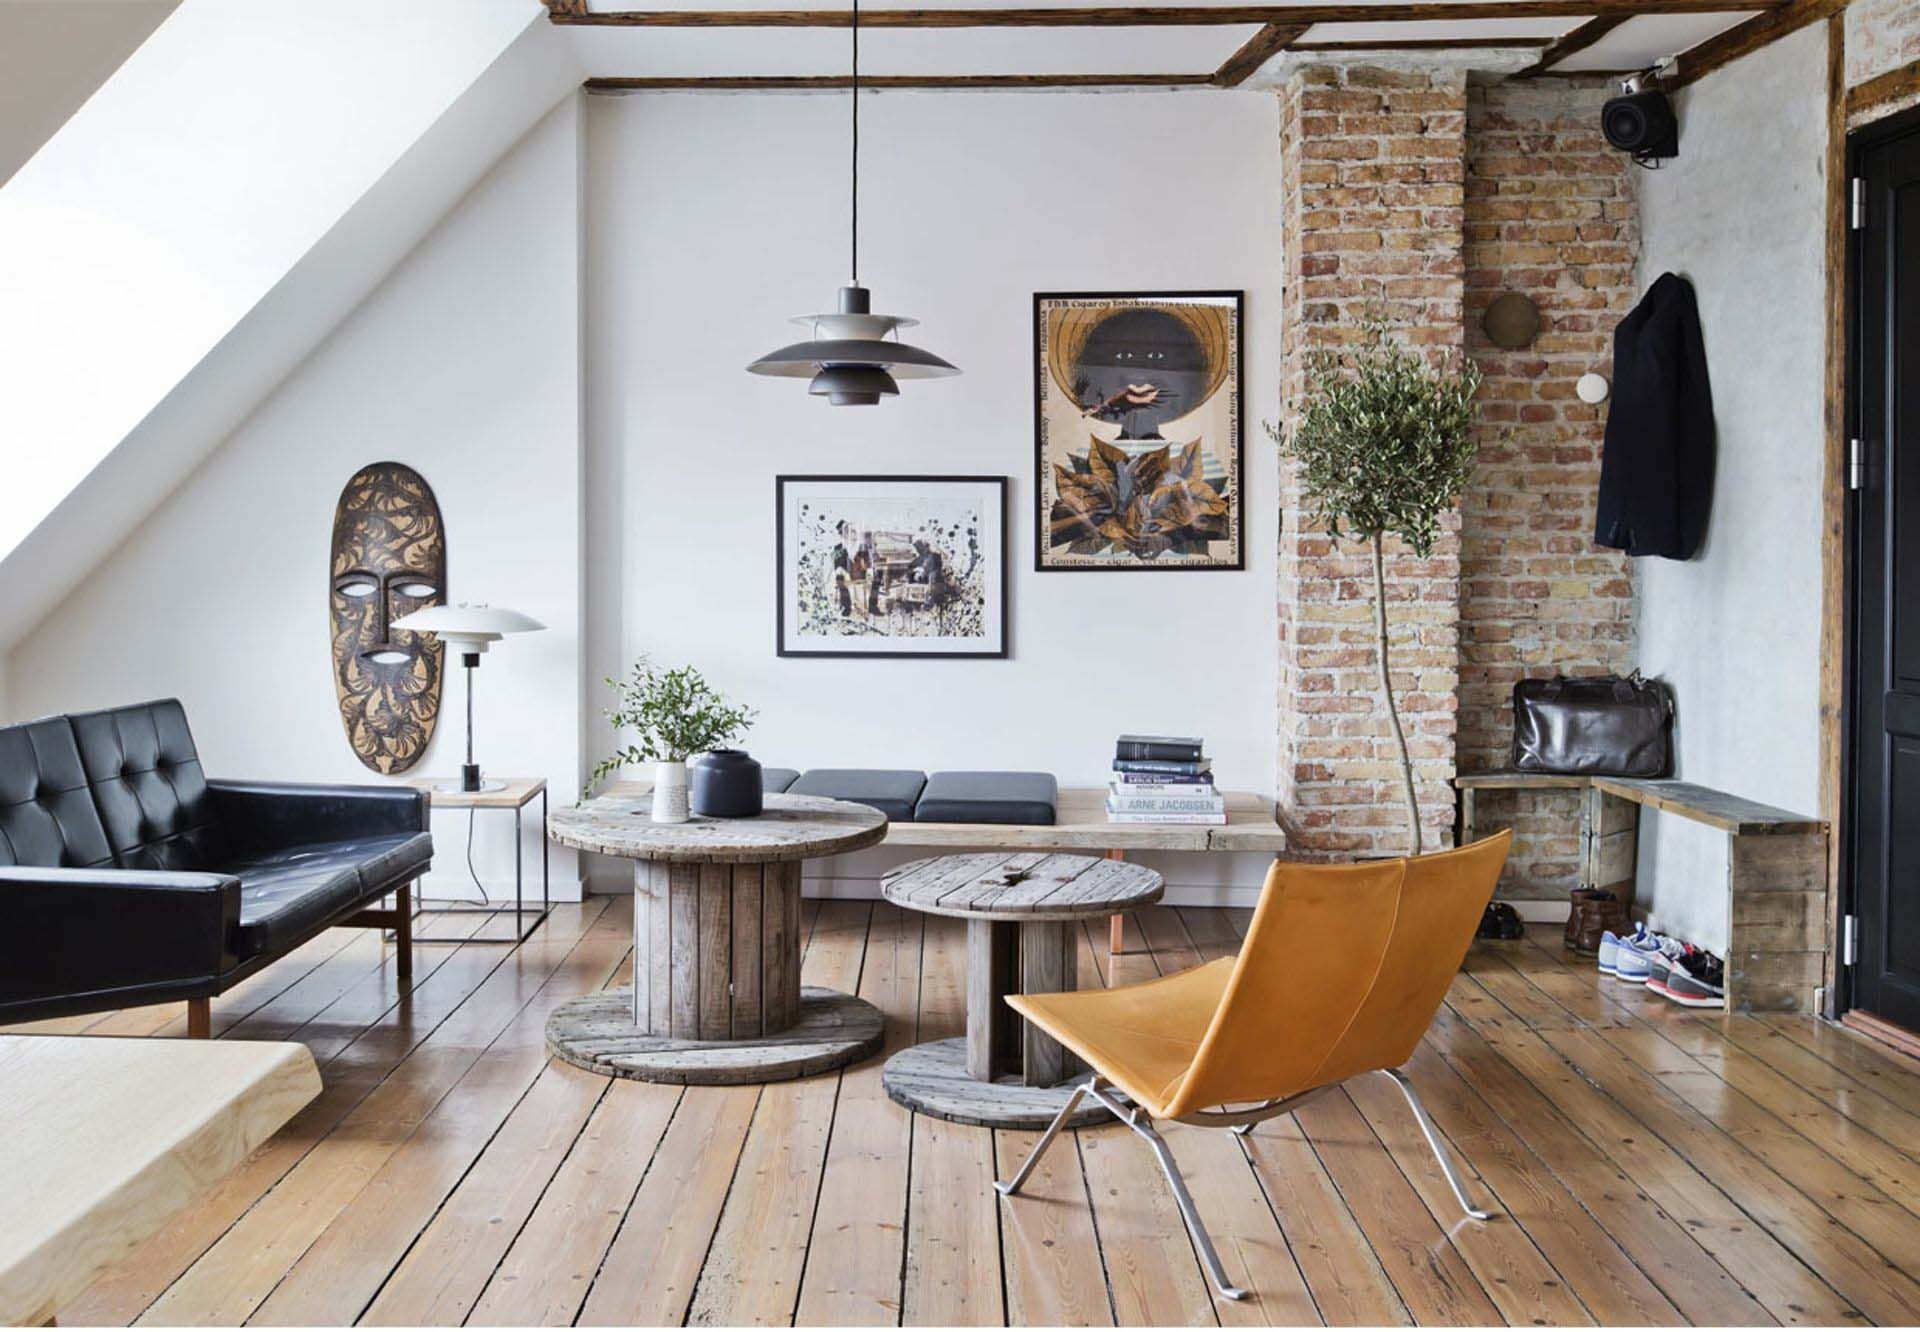 A masculine style apartment with exposed brick and recycled wood home of michael lauritzen owner of the good wood is located in copenhagen denmark